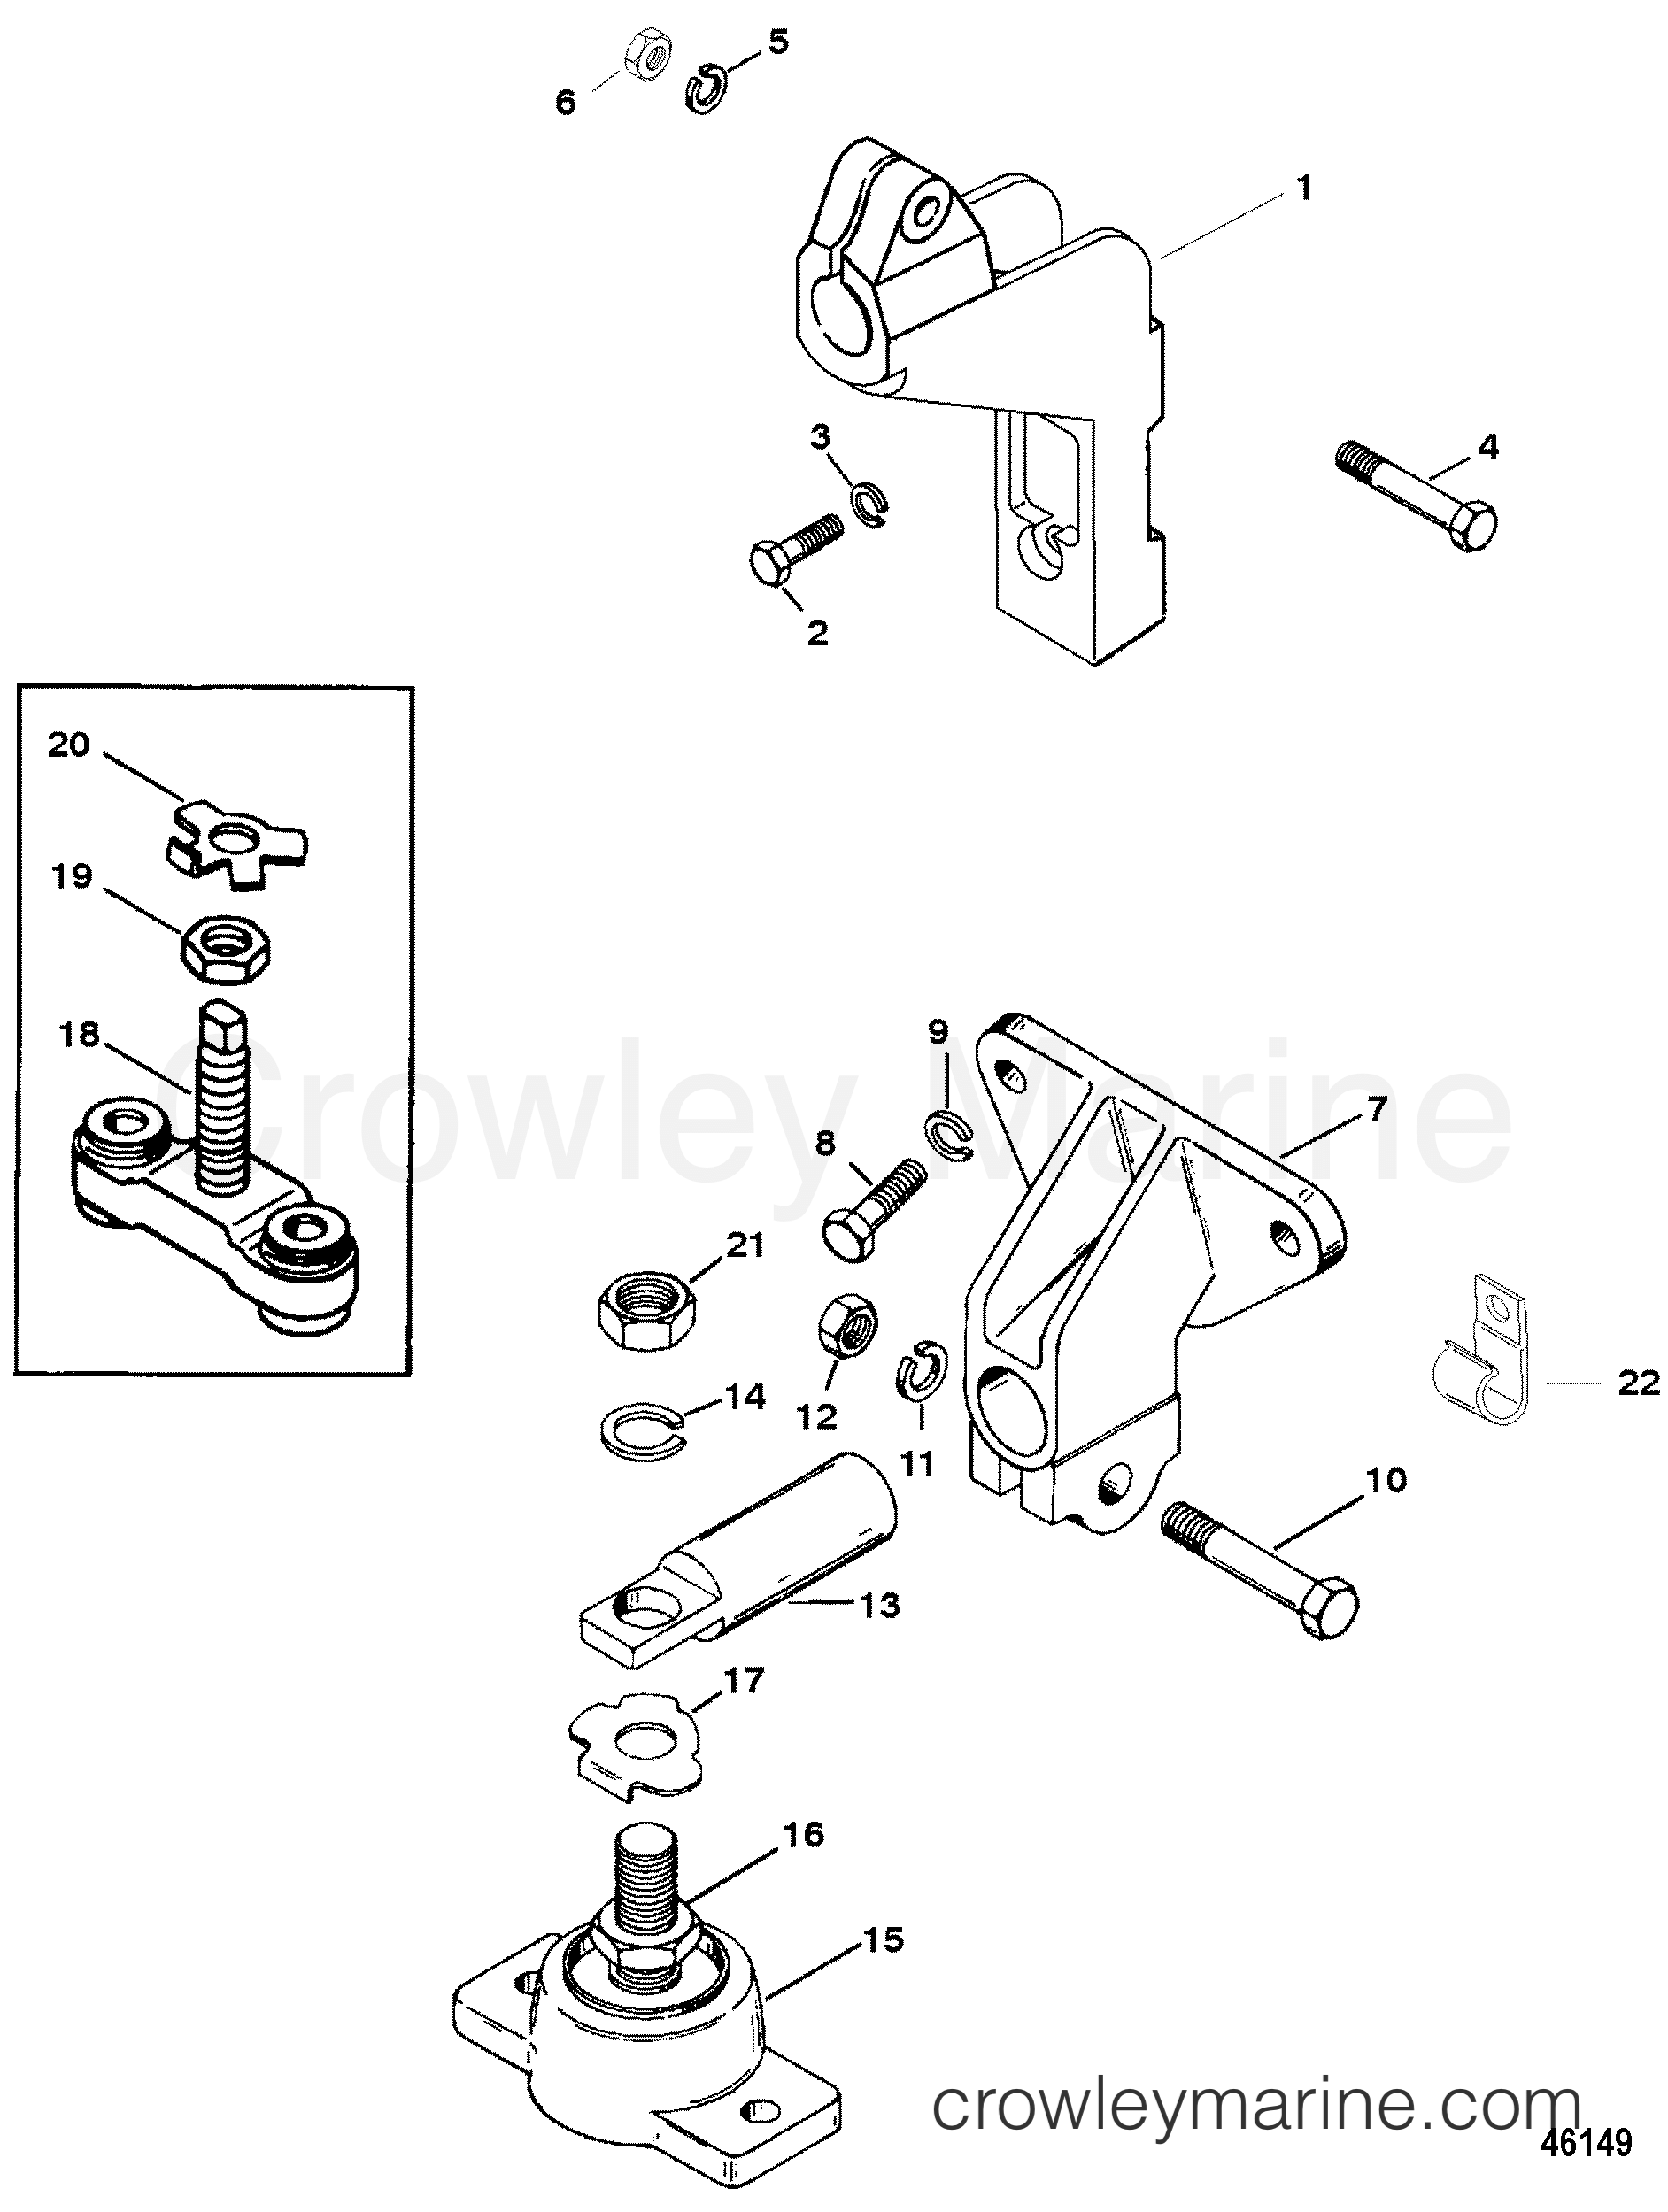 1997 Mercury Power Seat Diagram Electrical Wiring Diagrams 97 Tracer Engine Transmission And Mounting Inboard 5 7l 1965 Comet